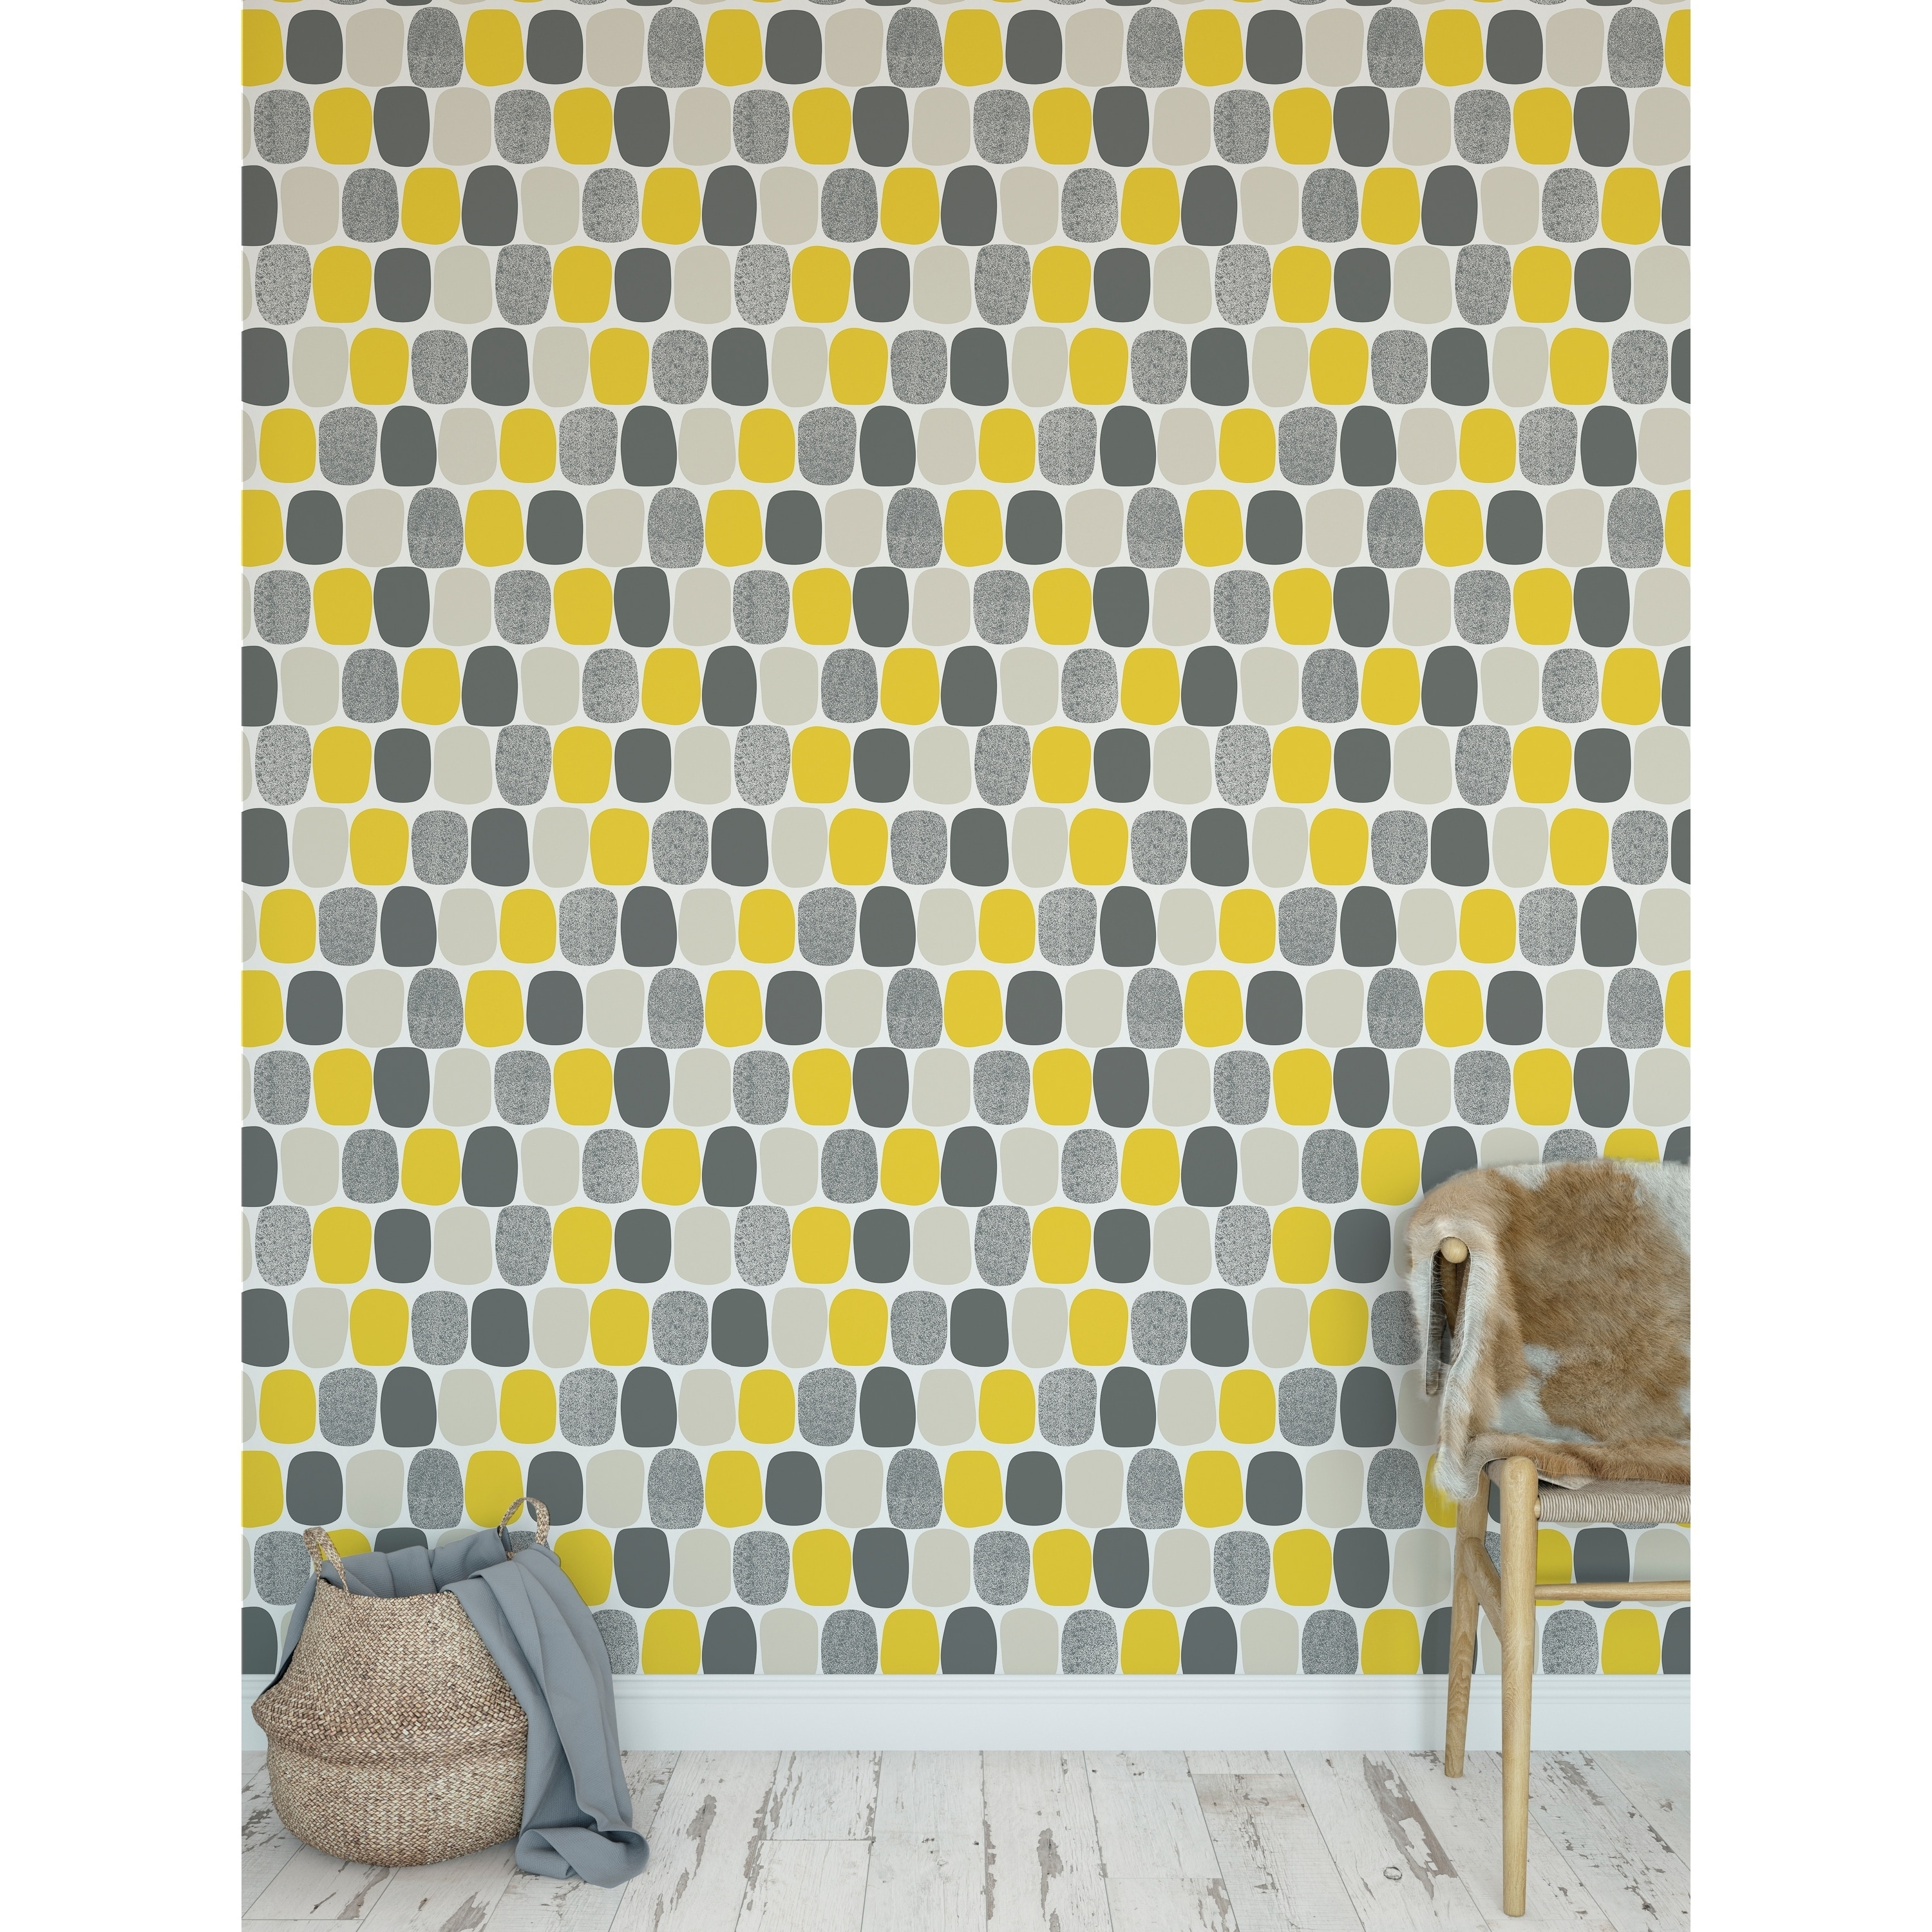 Shop Mid Century Ovals Yellow Peel And Stick Wallpaper By Kavka Designs Overstock 28388145